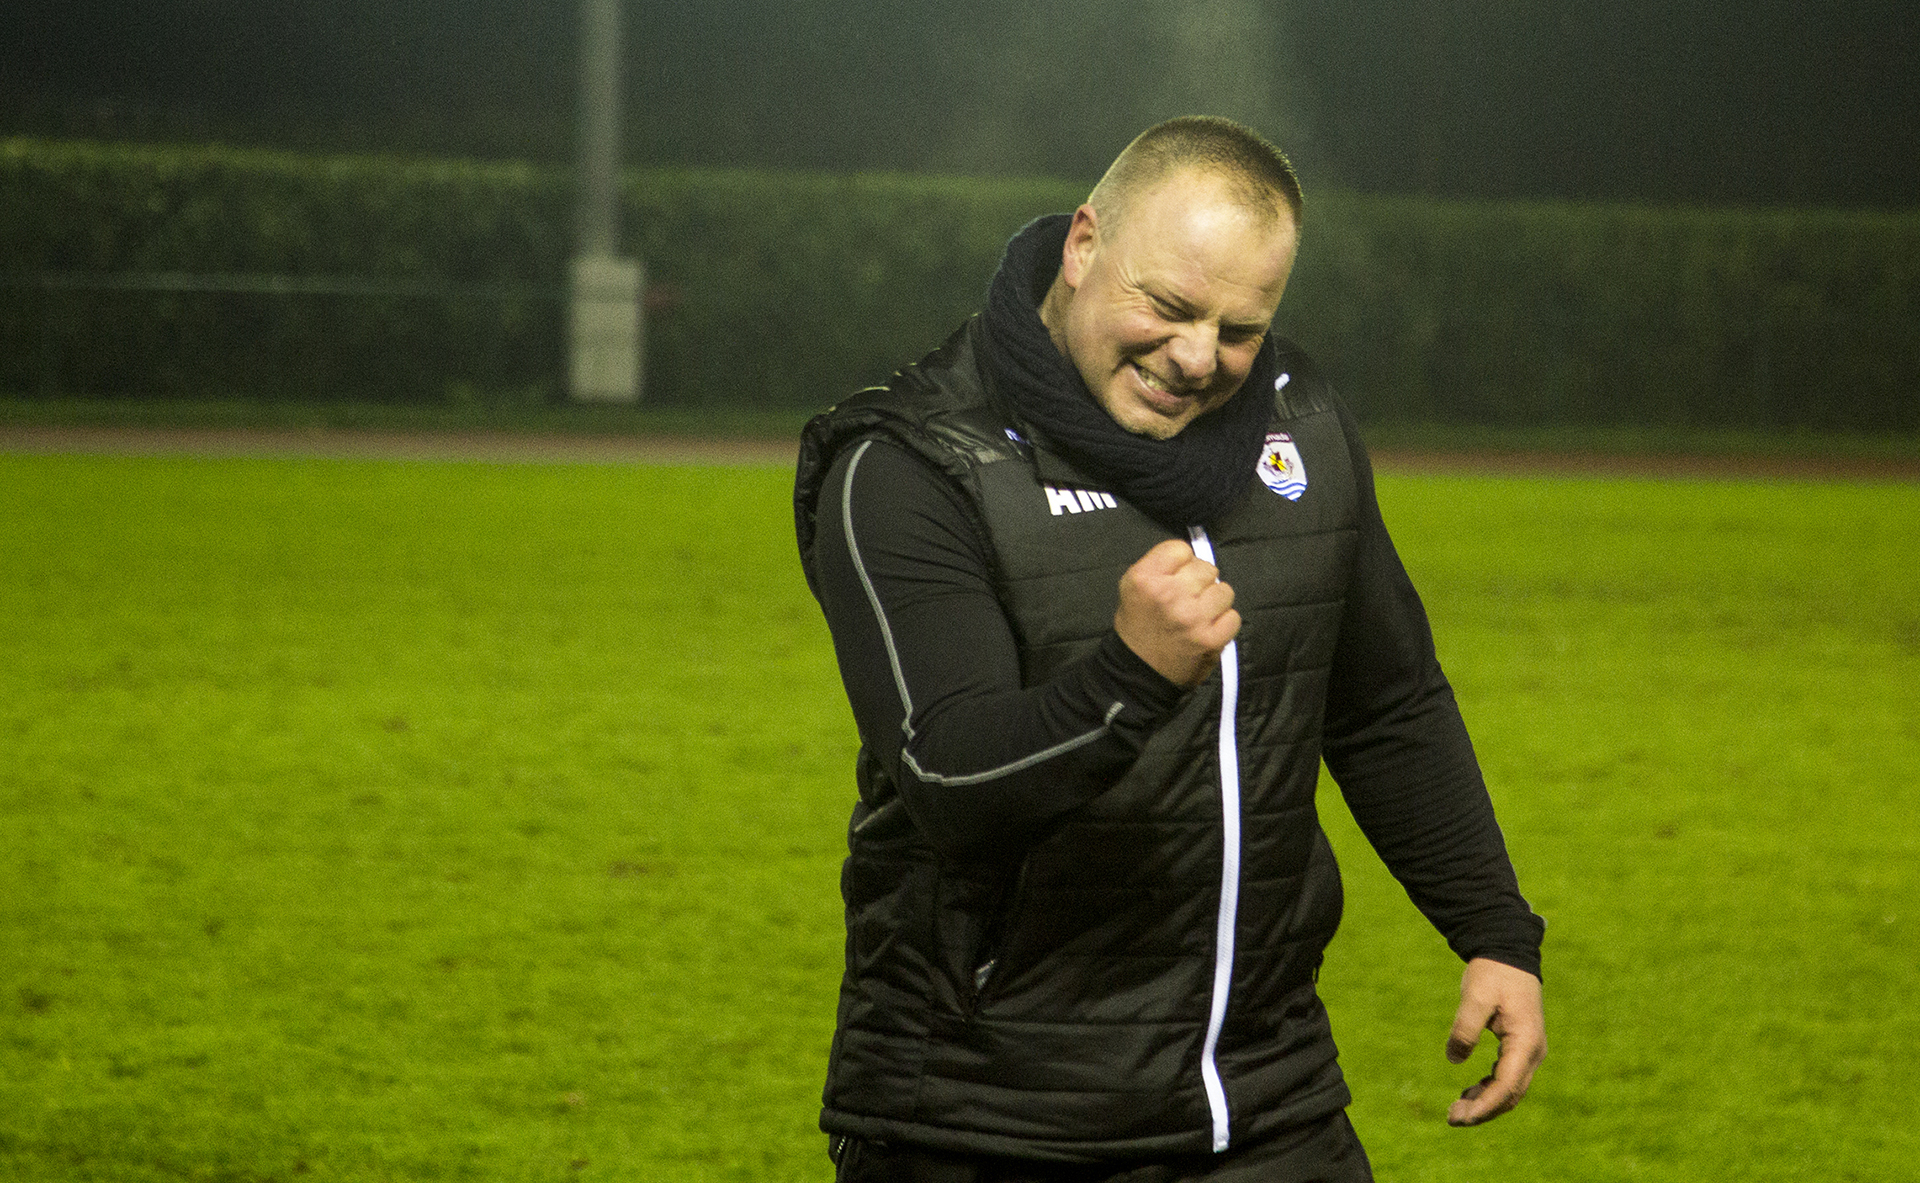 Andy Morrison celebrates after The Nomads 2-0 victory over TNS in January 2016 to secure Top Six football © NCM Media